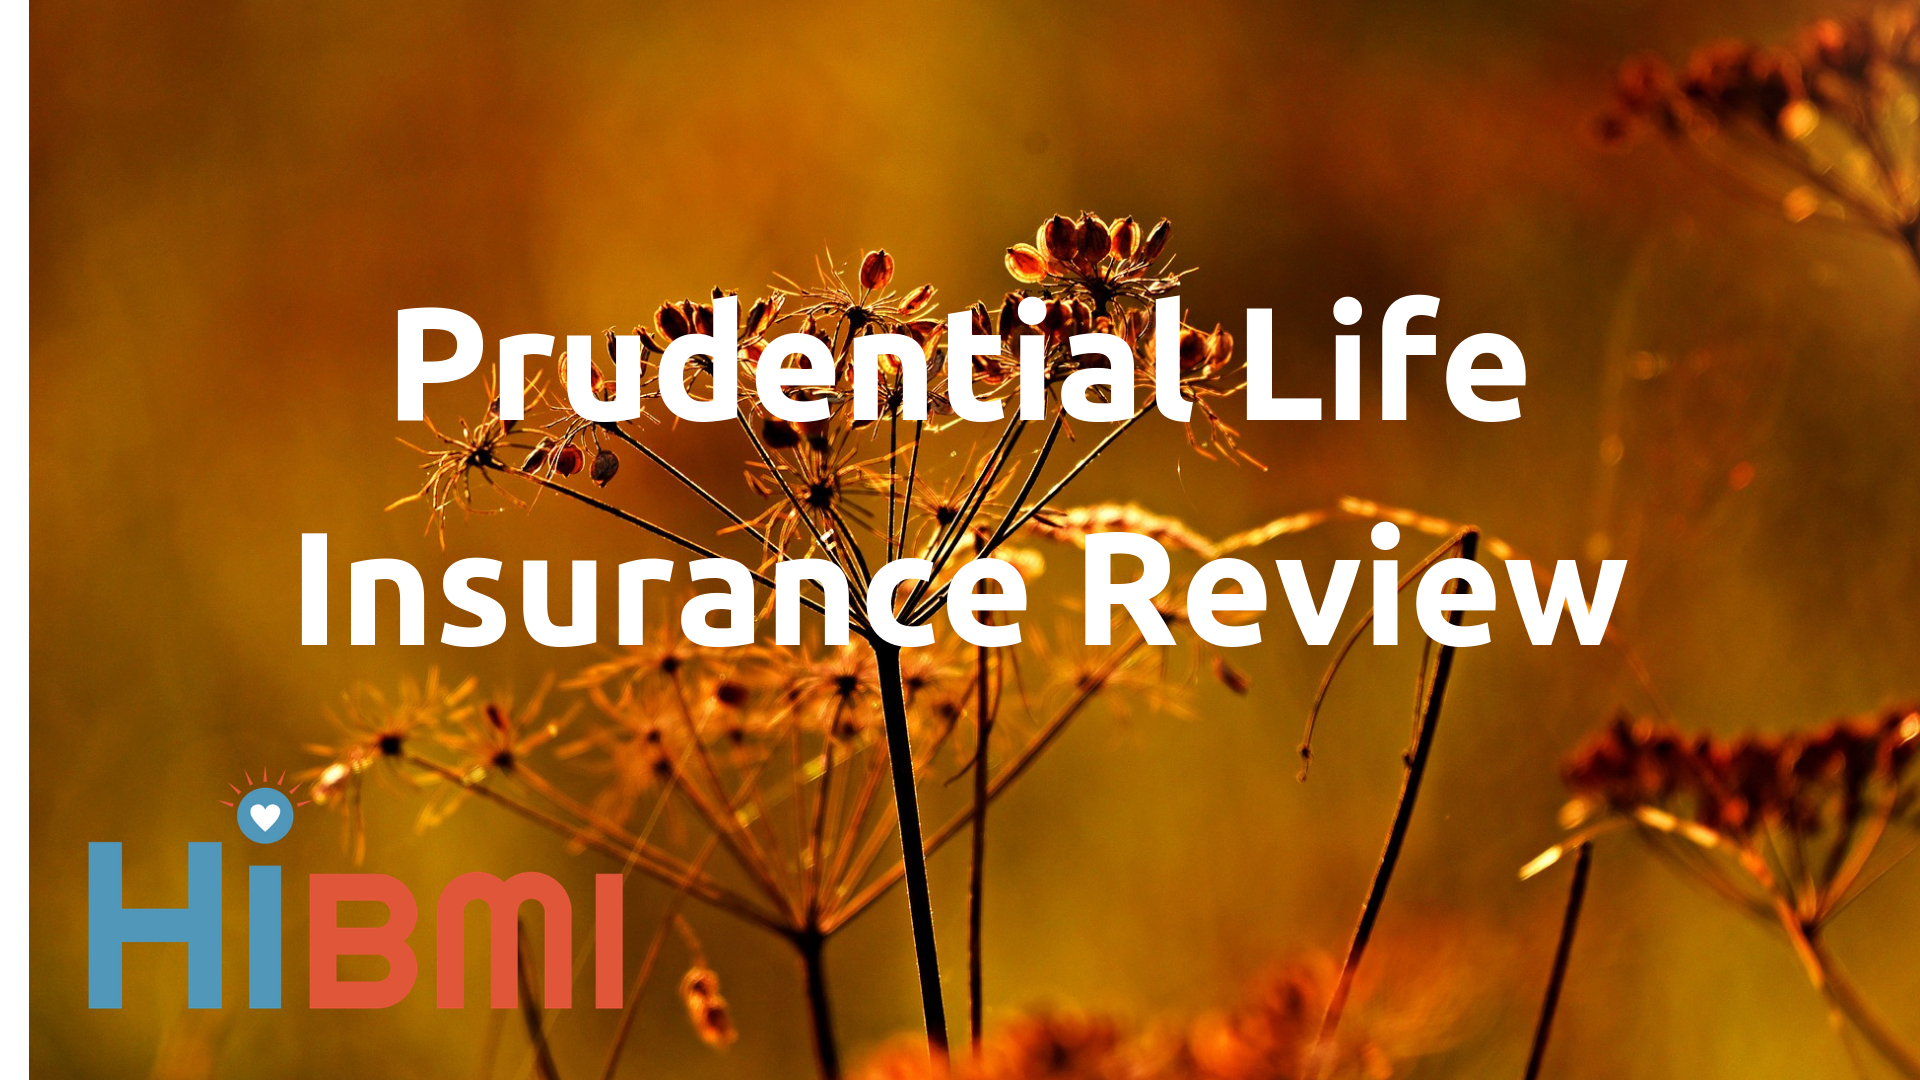 prudential life insurance review, whole life insurance, term life insurance, universal life insurance, insurance riders, get a quote now, get insured fast